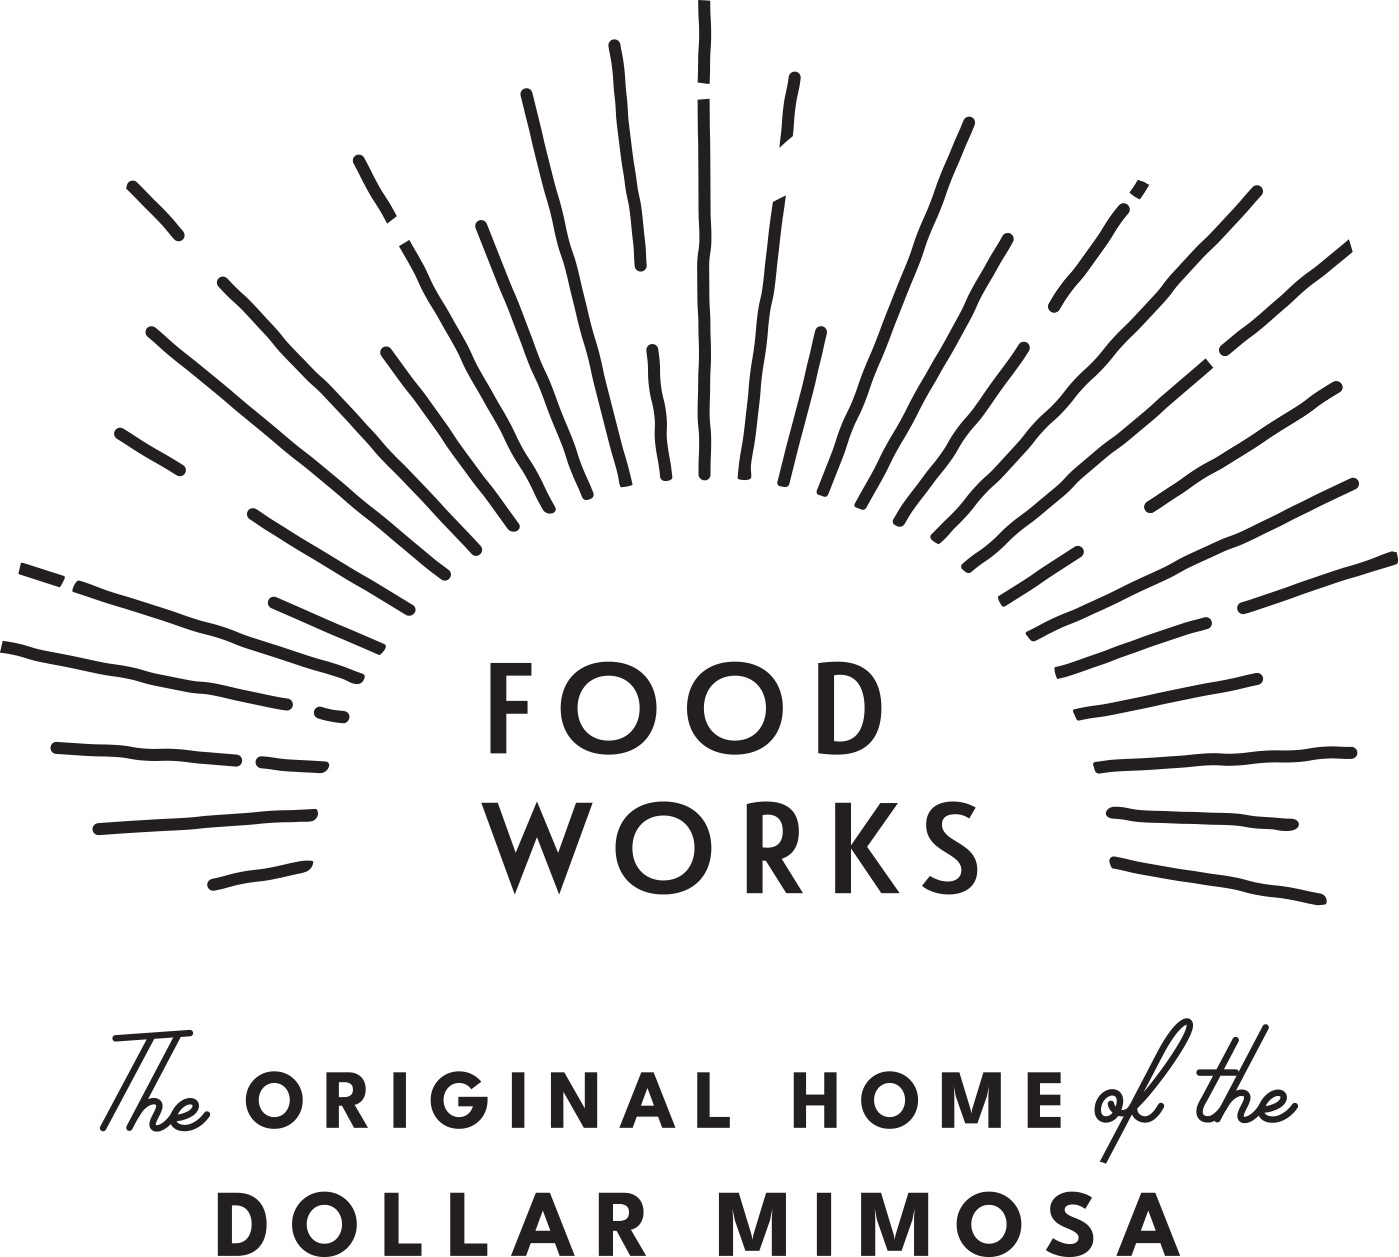 Food Works was the first brunch in Chattanooga with the dollar mimosa